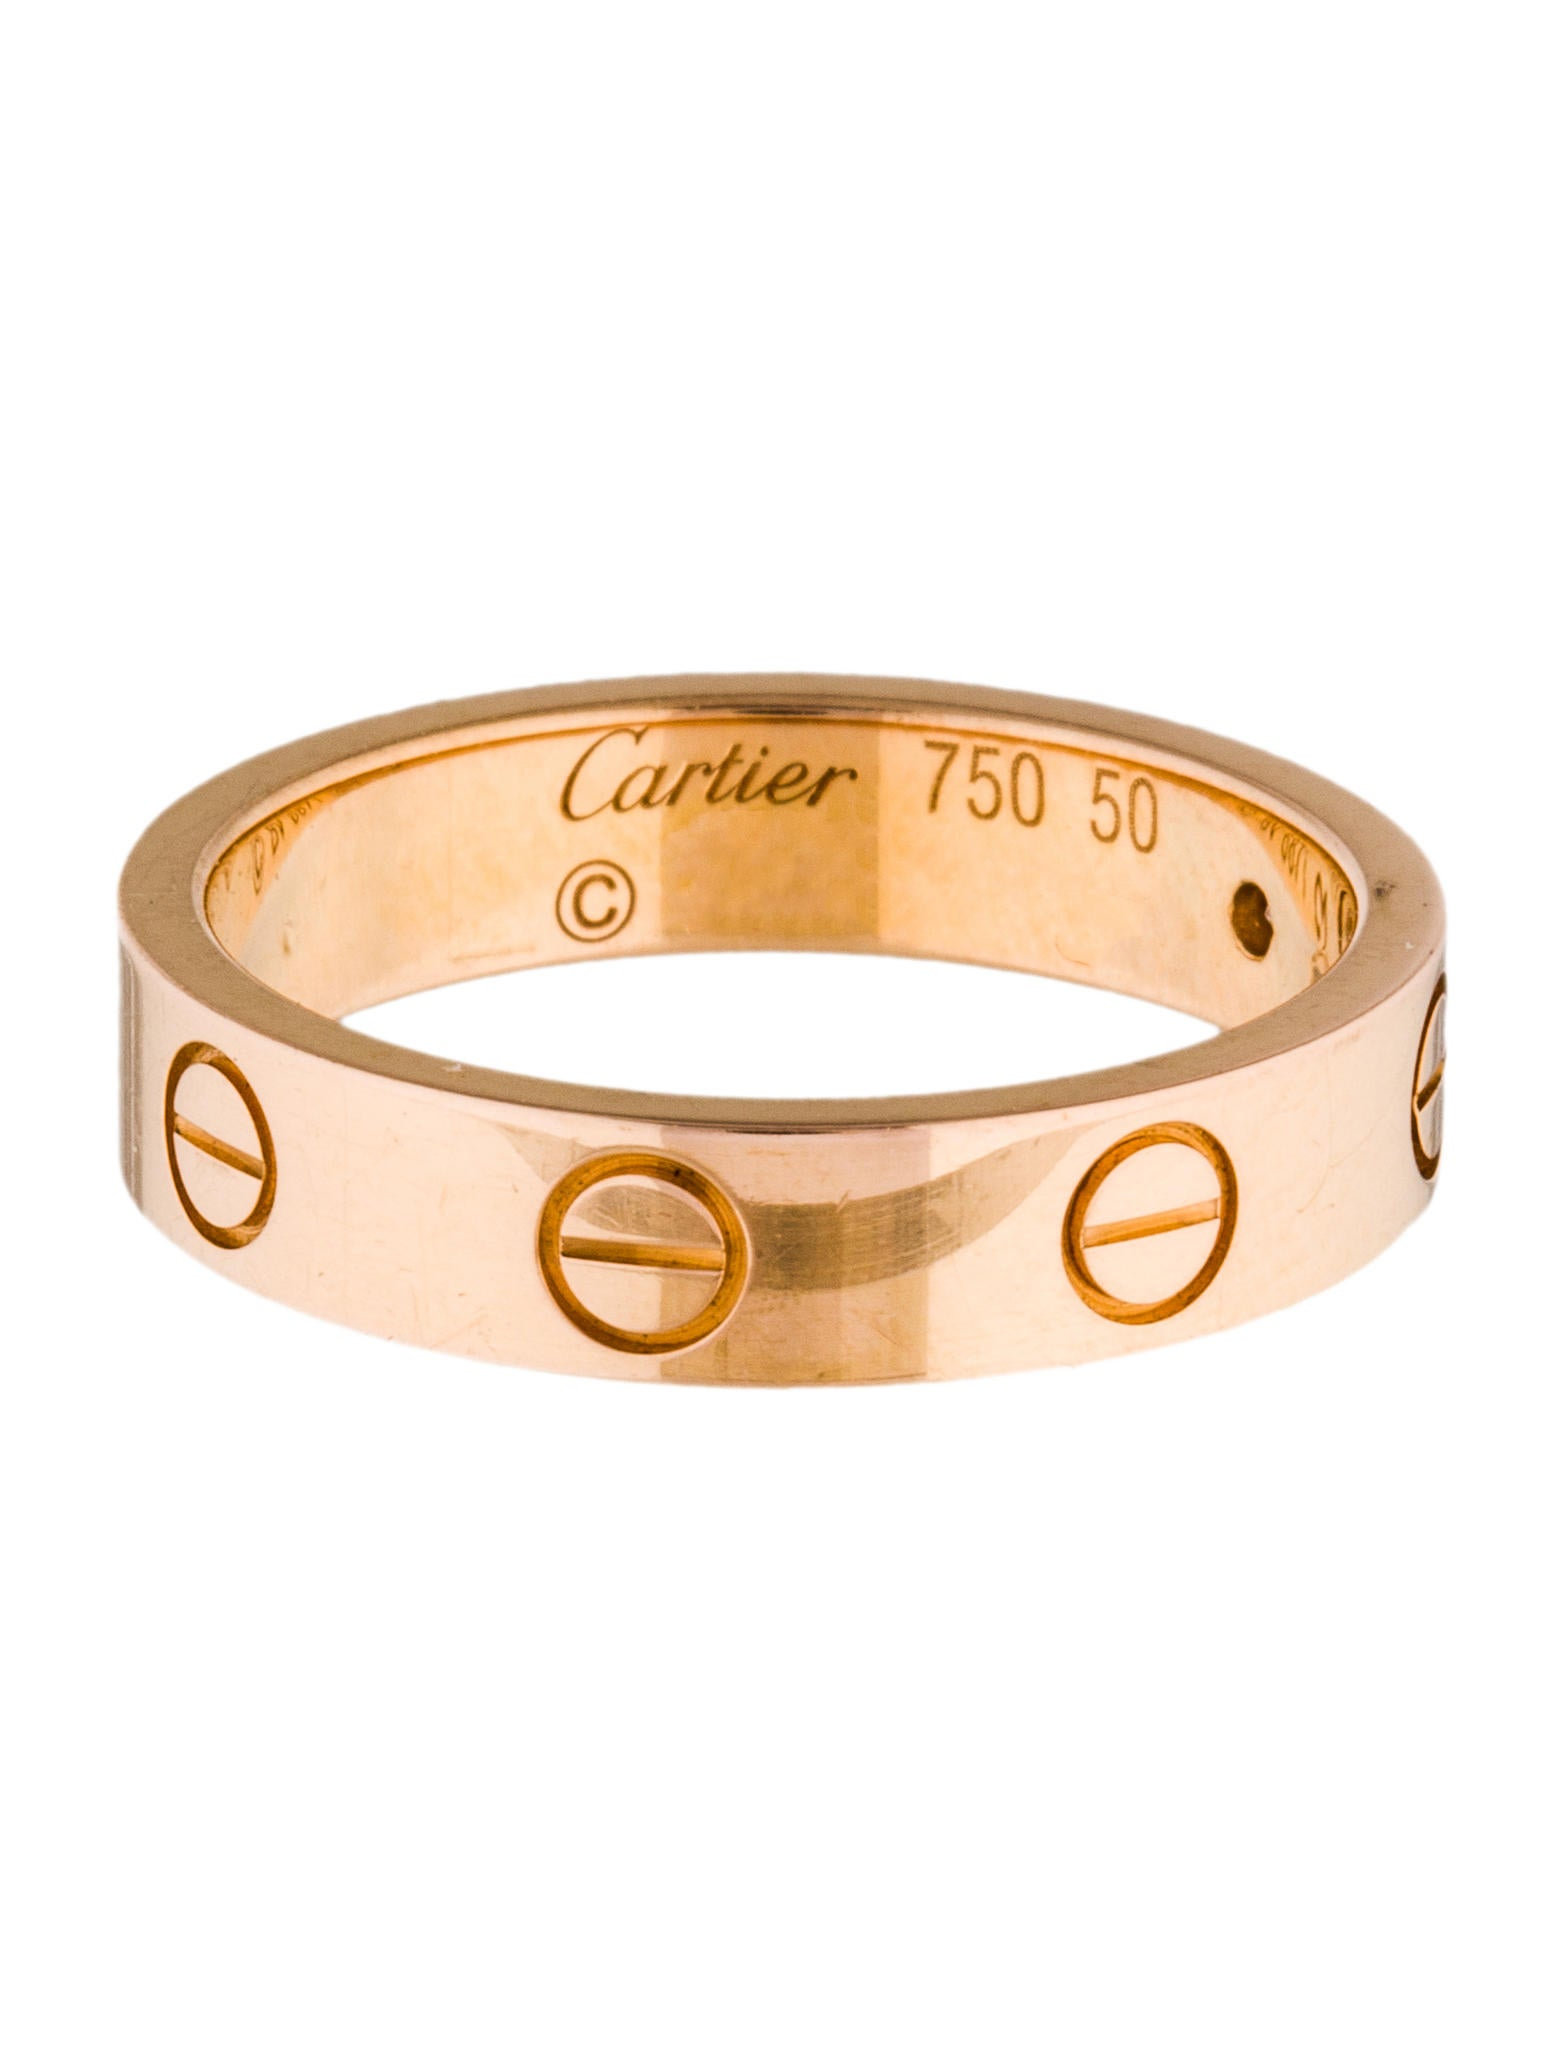 Cartier Diamond LOVE Wedding Band - Rings - CRT31132 | The ...